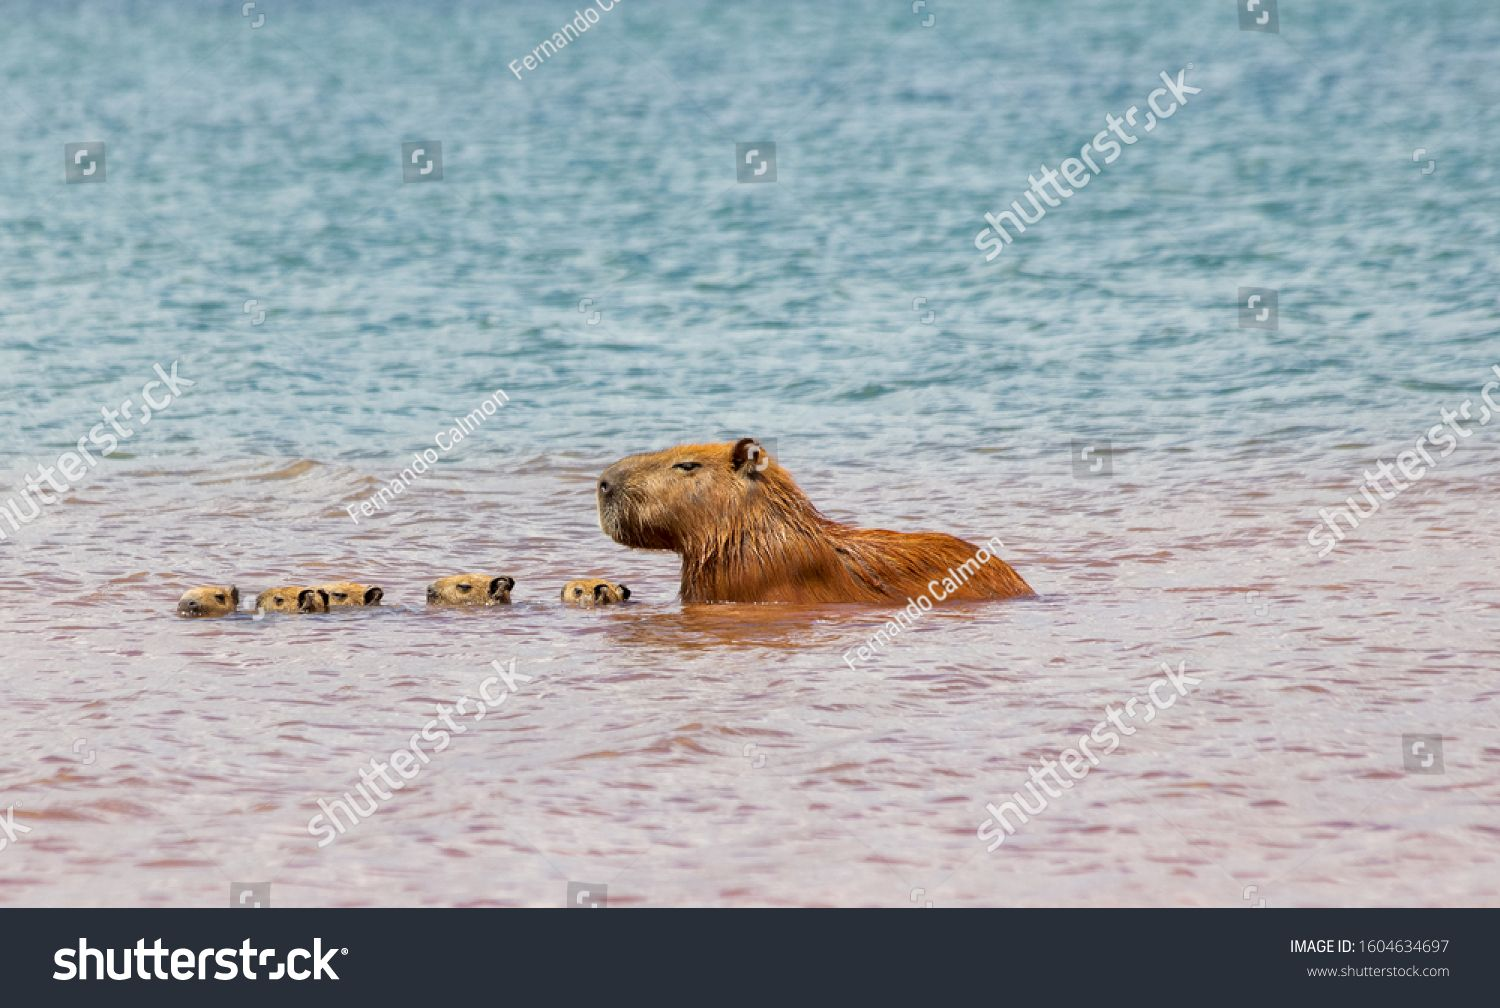 Five capybara chicks swimming together with their mother at Parano¨¢ Lake in Brasilia, Brazil. The capybara is the largest rodent in the world. Species Hydrochoerus hydrochaeris. Wildlife. Cerrado #Ad , #AD, #Lake#Parano#Brazil#Brasilia